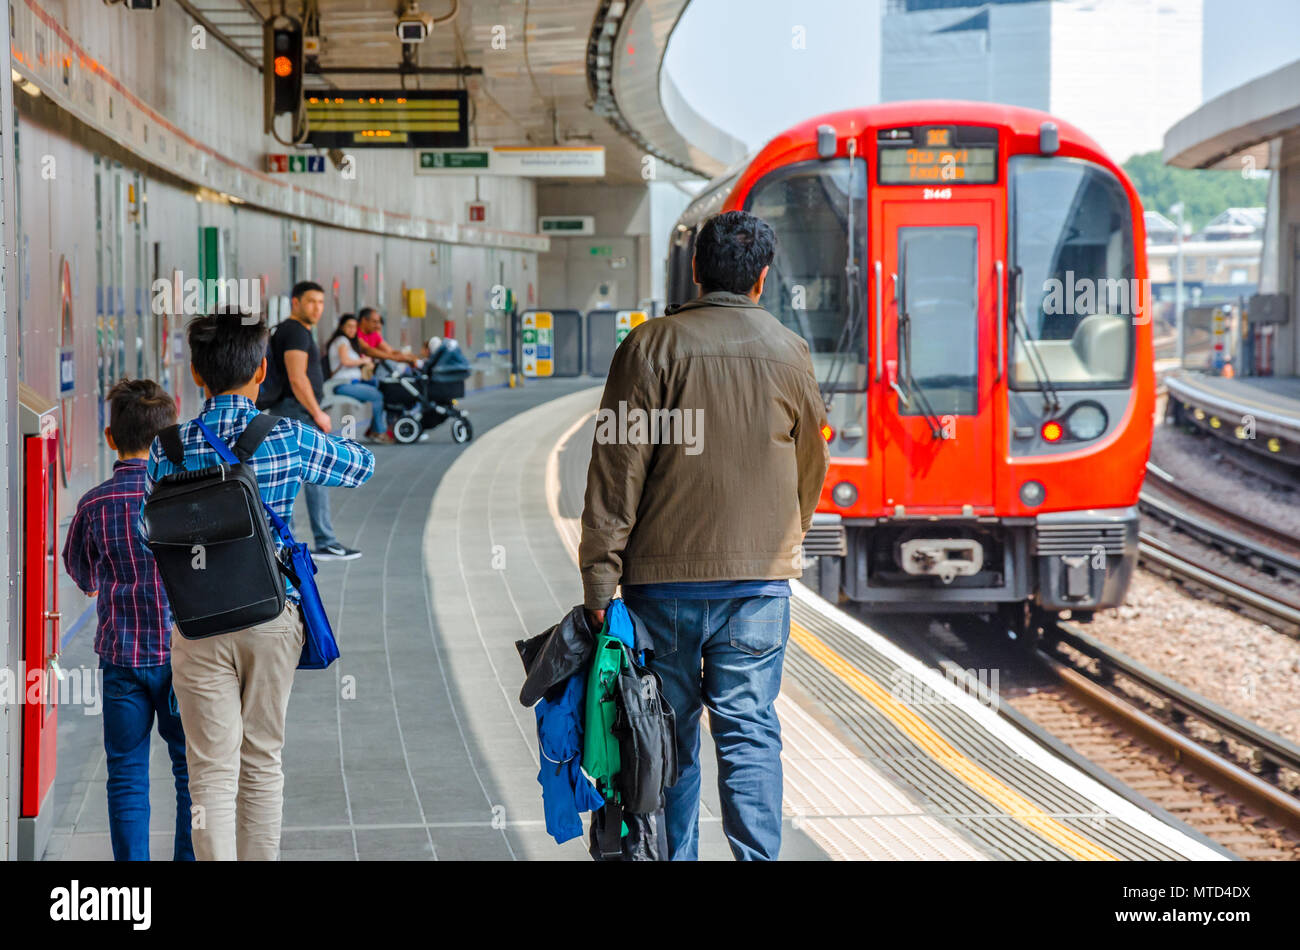 A family walk down the platform towards a waiting train at Wood Lane London Underground Station. - Stock Image